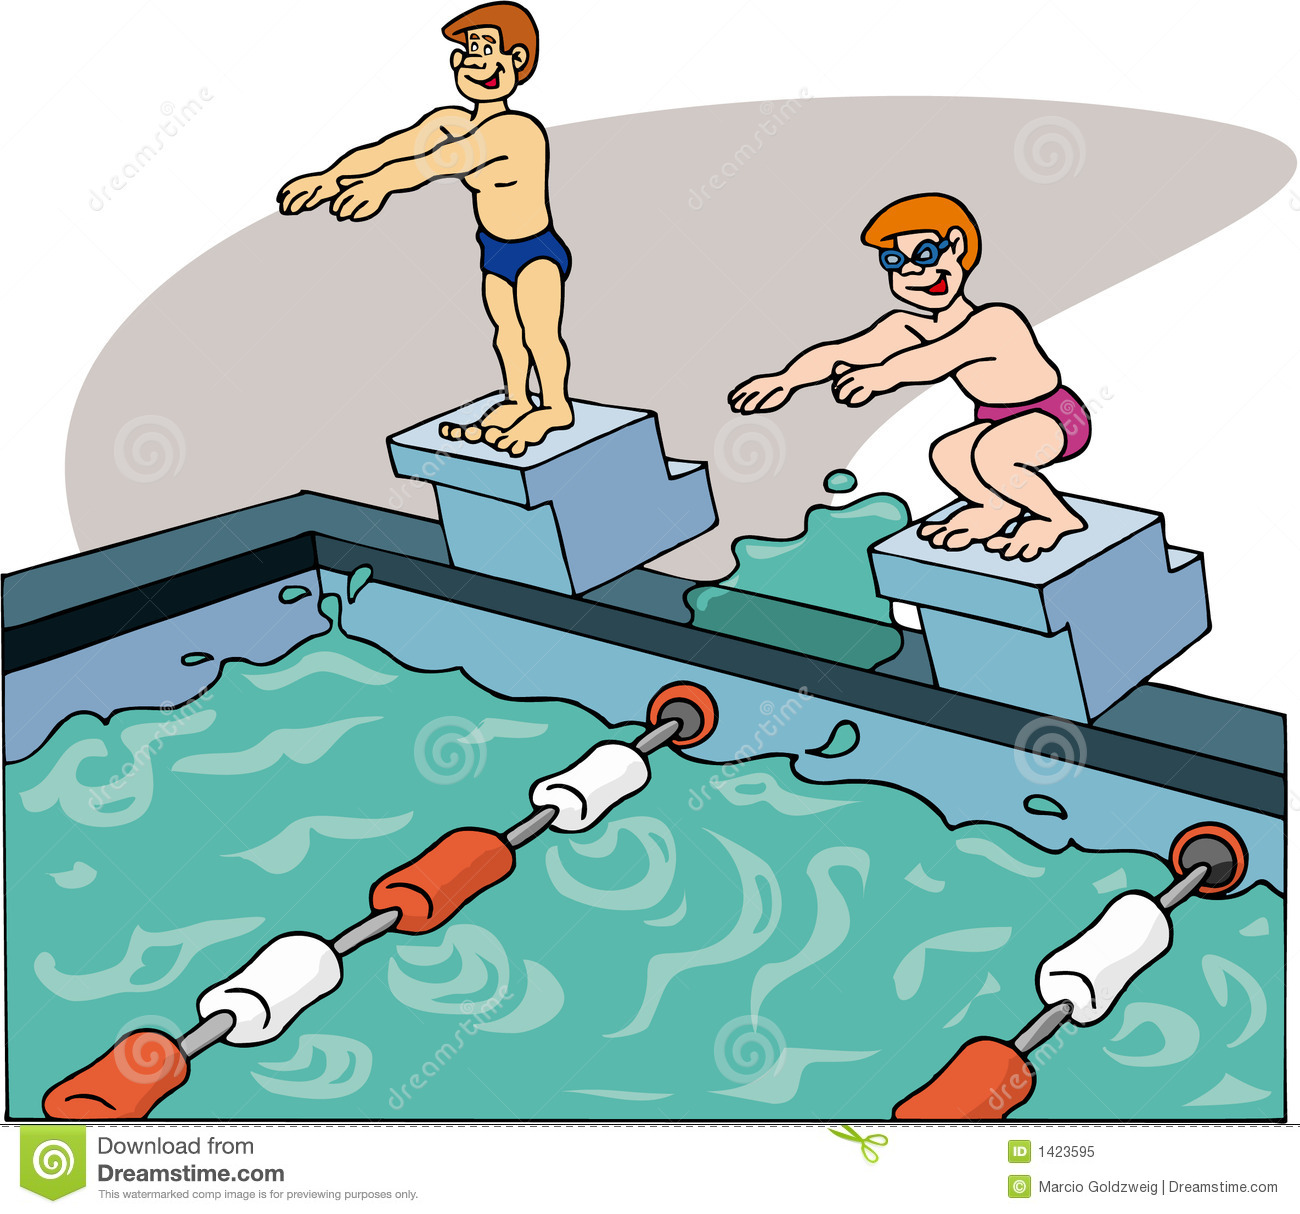 Nageurs nageant illustration stock illustration du for Apprendre a plonger dans la piscine